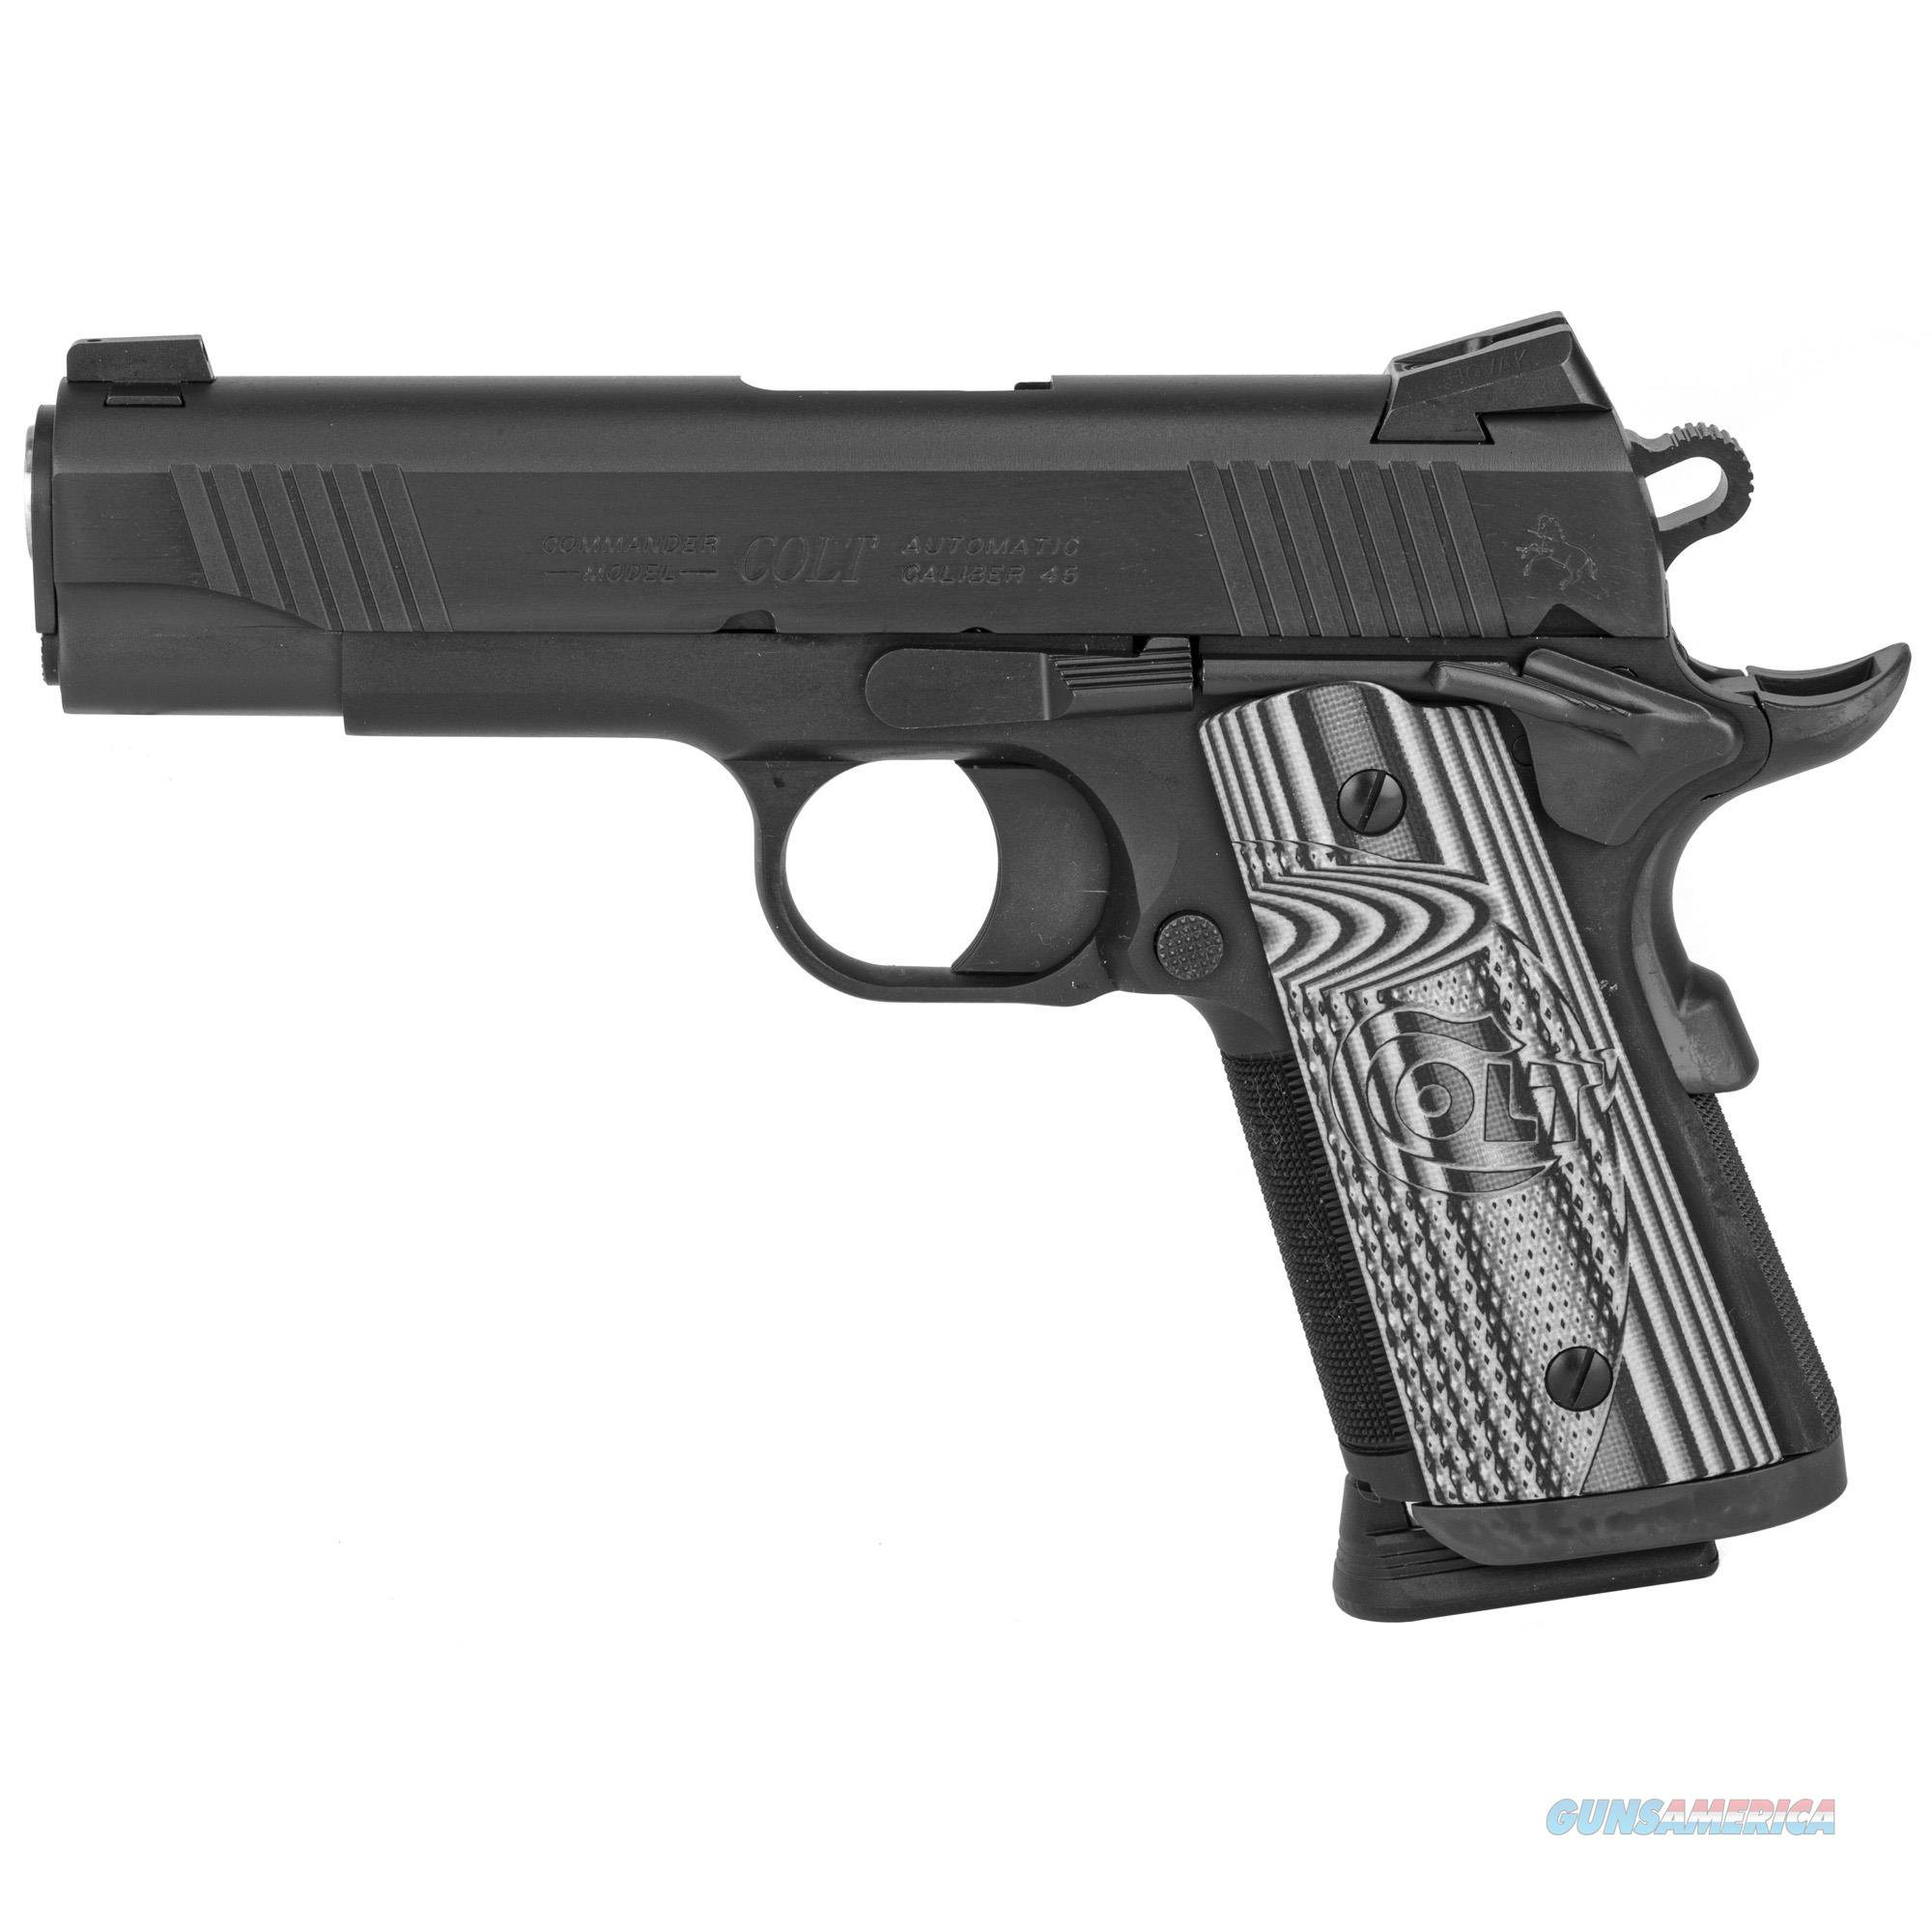 Colt Mfg Commander, Colt O9840ccu    Ccu Con Carry   45        Blk Dlc  Guns > Pistols > 1911 Pistol Copies (non-Colt)